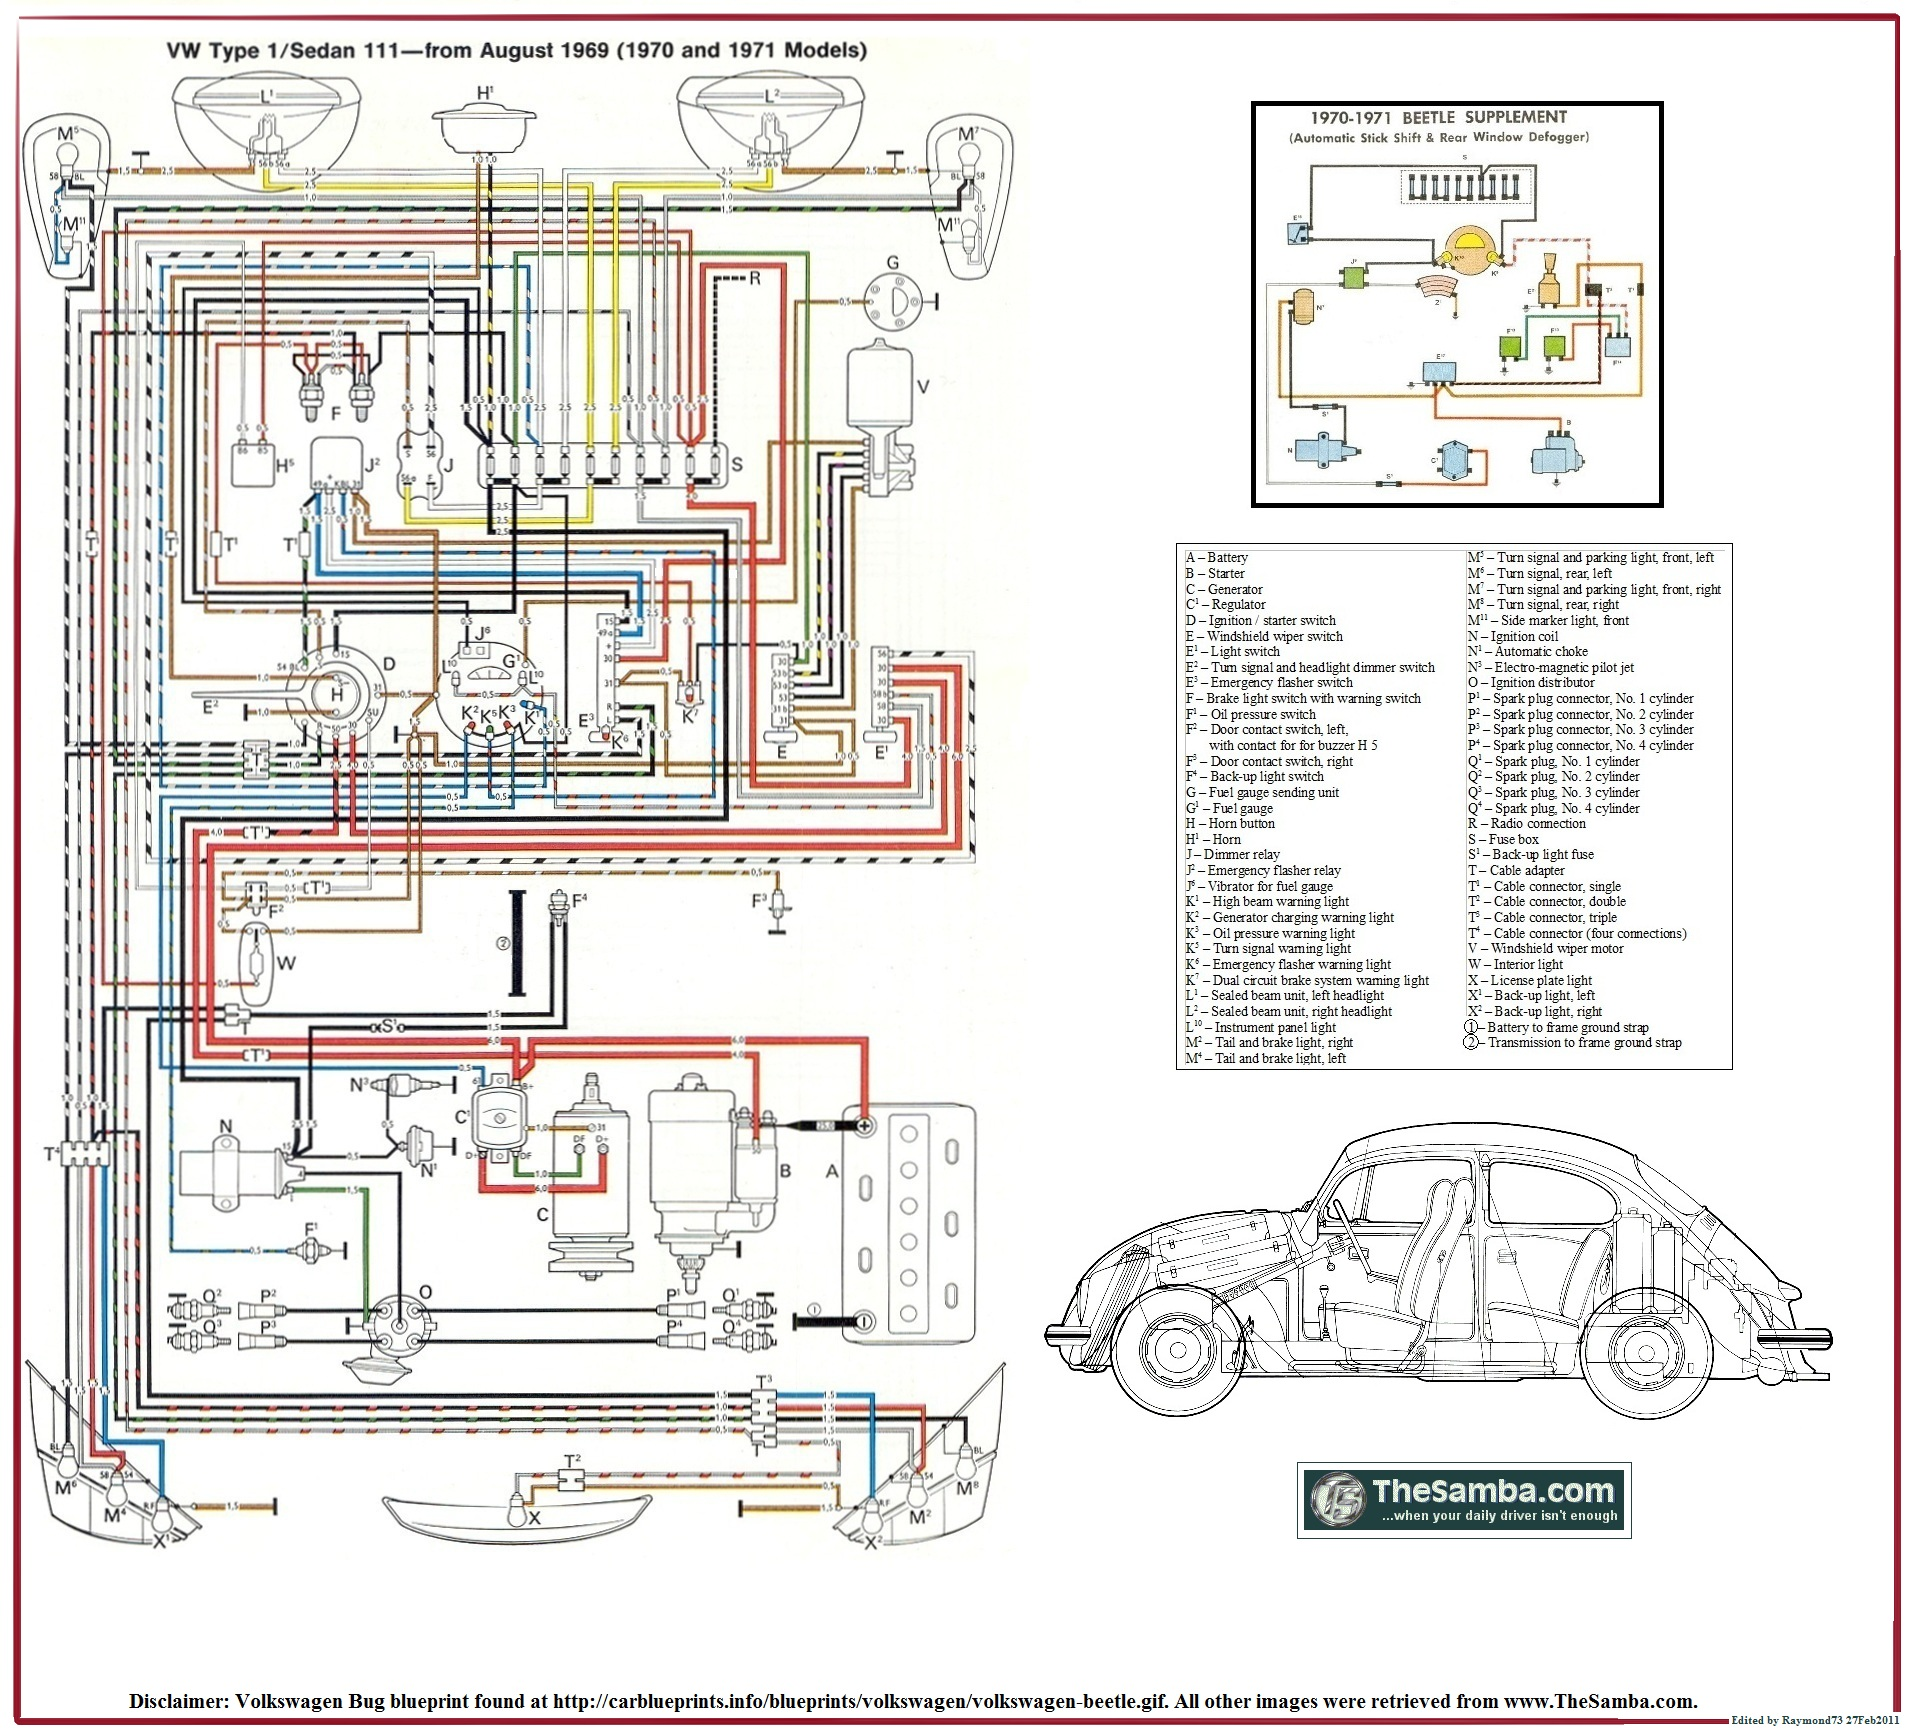 thesamba.com :: type 1 wiring diagrams 1970 vw wiring digram